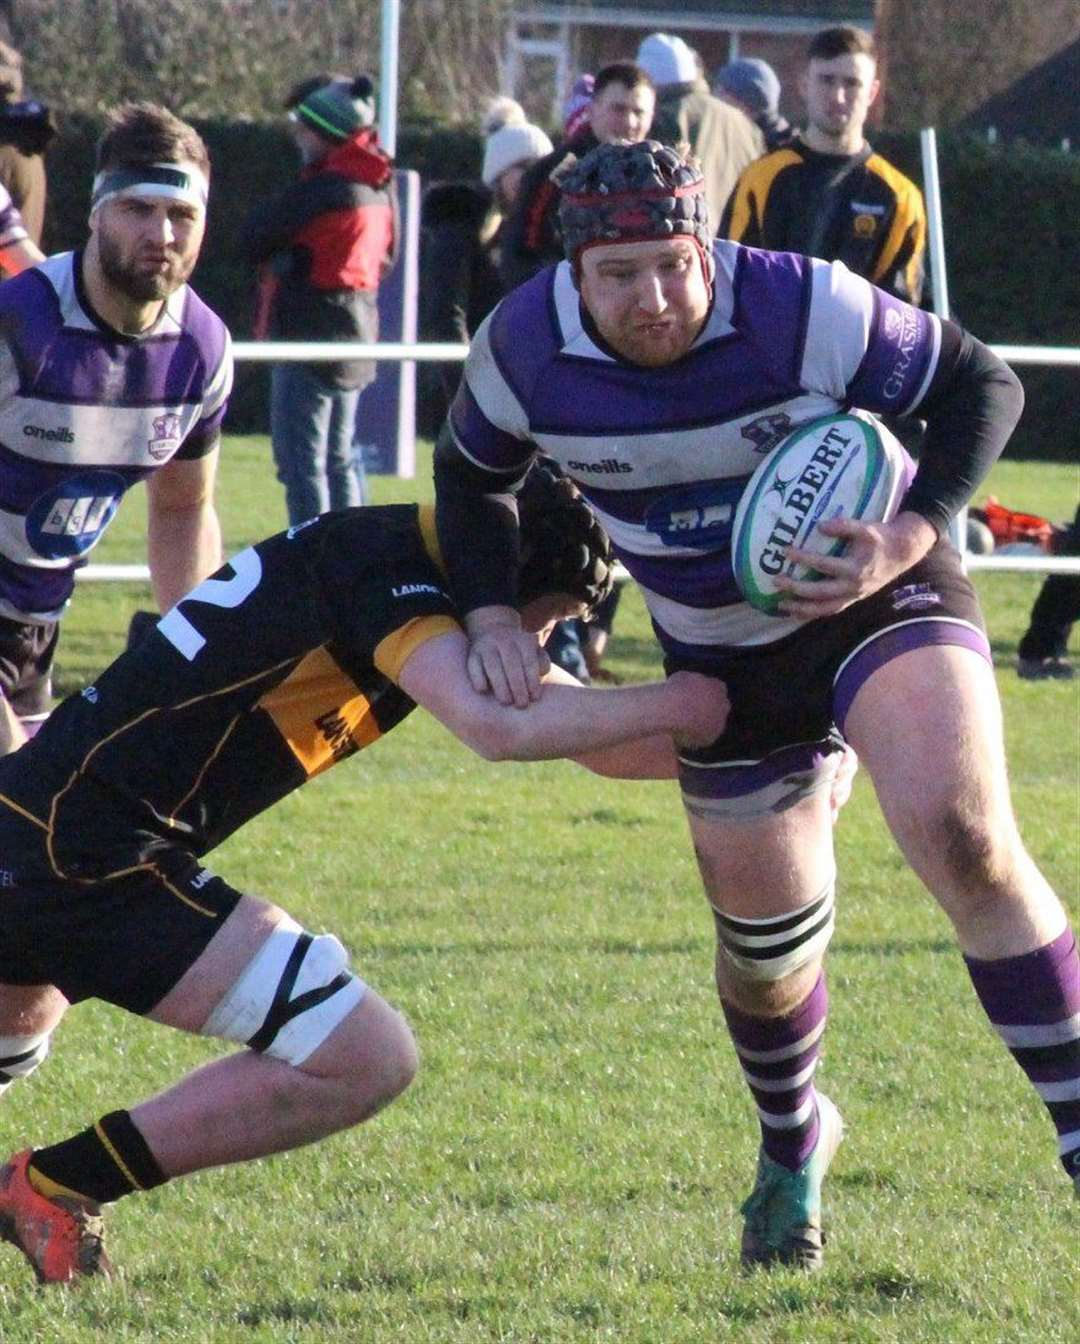 Stamford and Oakham will lock horns in Midlands 2 East (South) next season.